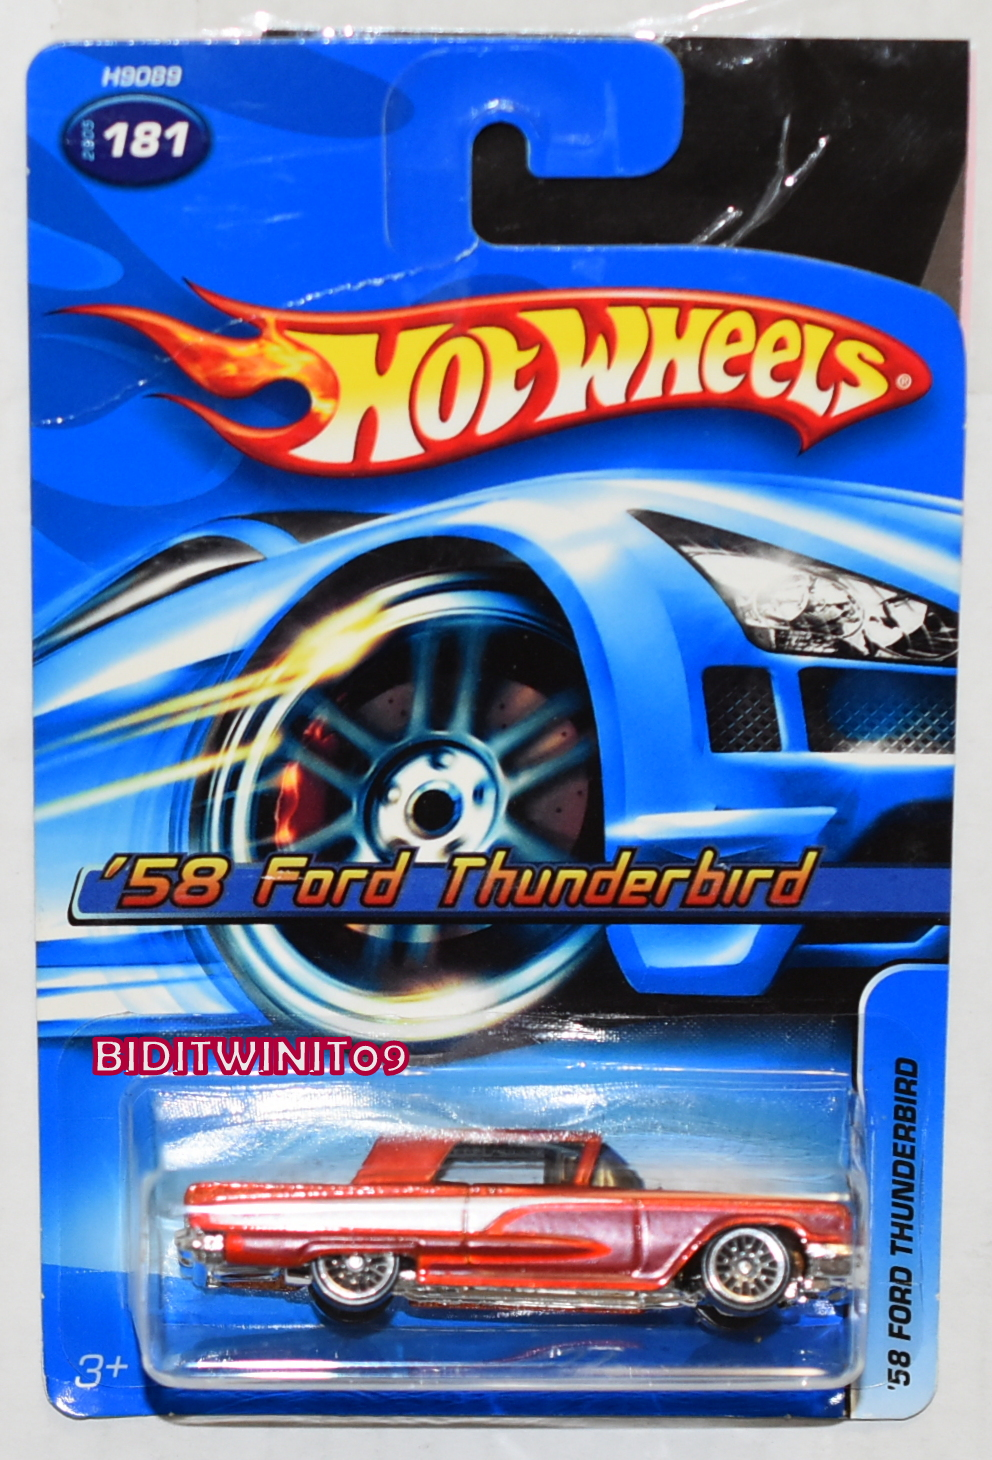 HOT WHEELS 2005 '58 FORD THUNDERBIRD #181